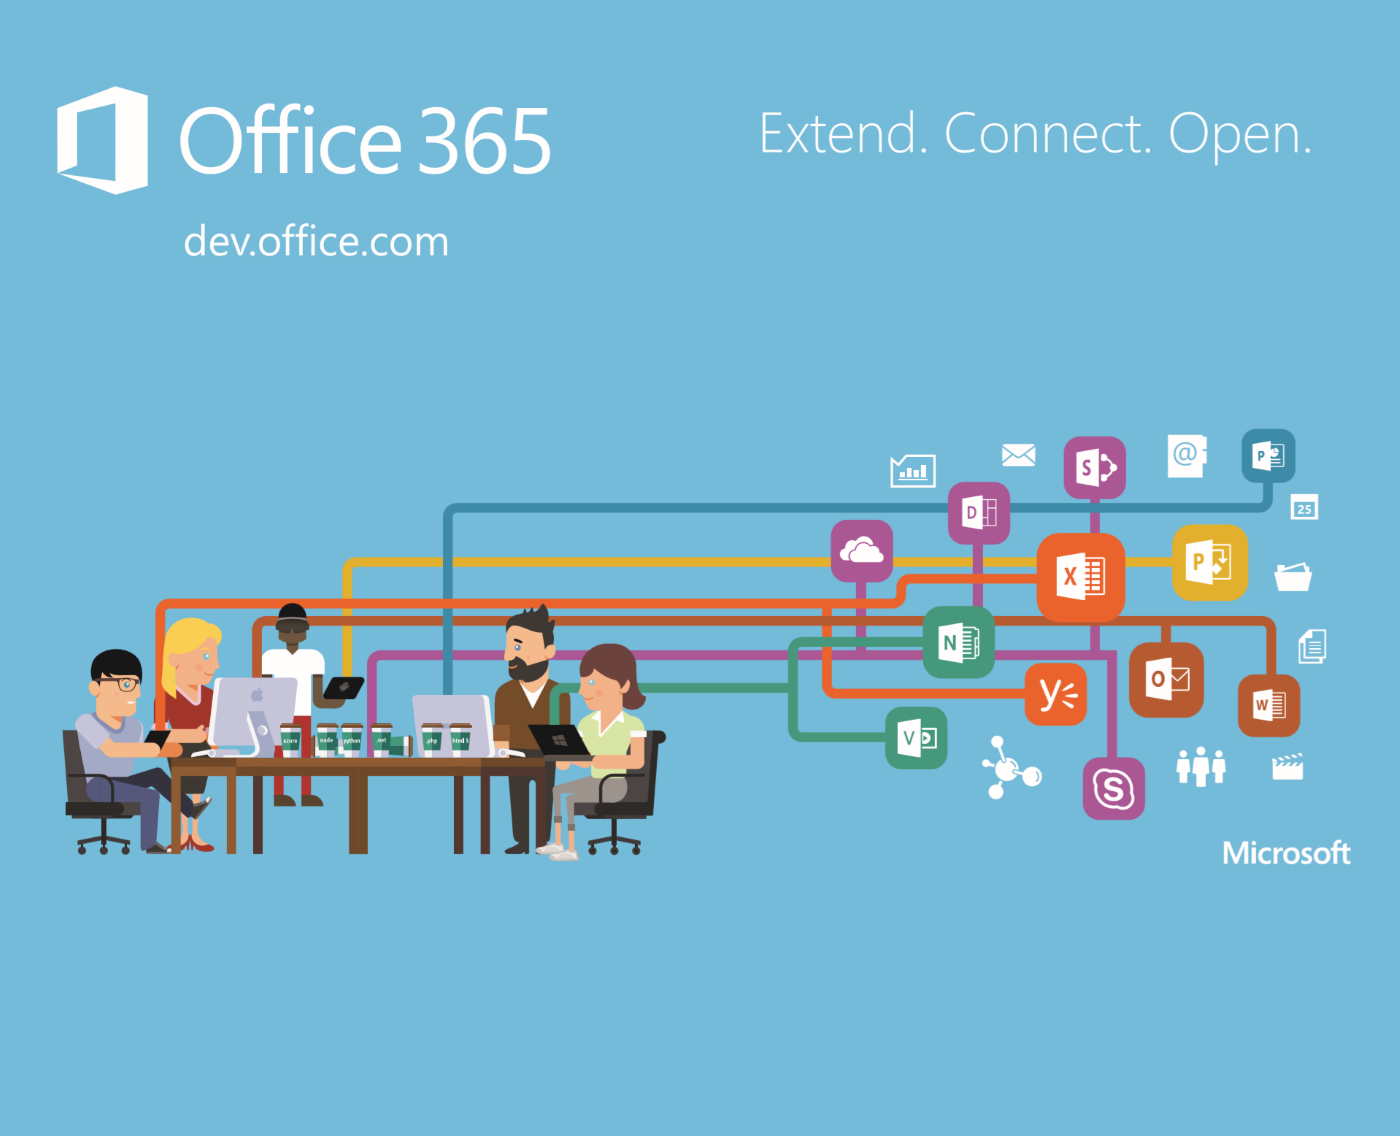 Office 365 Extend